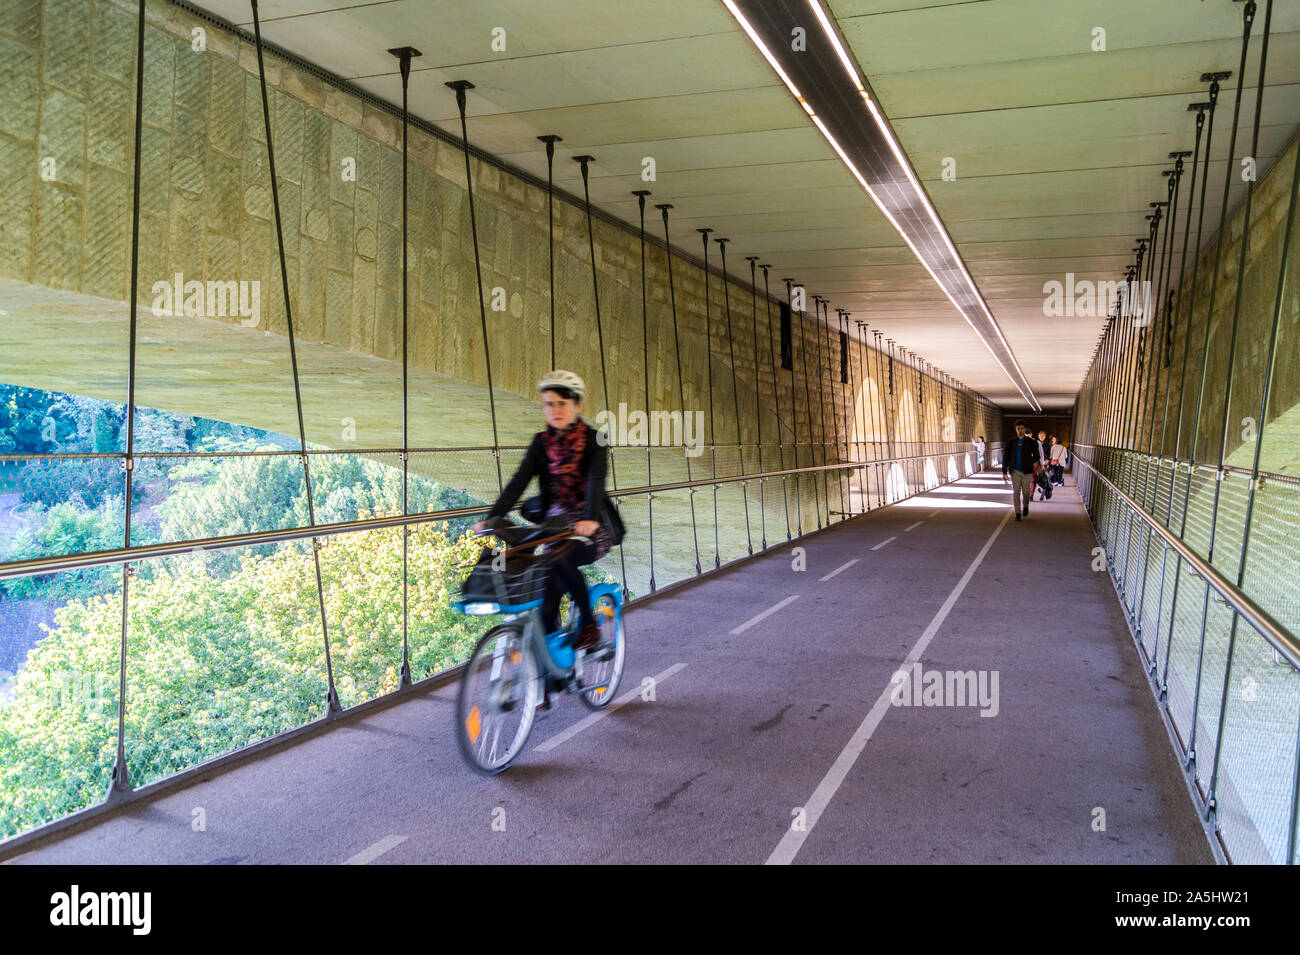 a-female-cyclist-on-the-cycle-path-suspended-under-pont-adolphe-adolphe-bridge-luxembourg-city-grand-duchy-of-luxembourg-2A5HW21.jpg